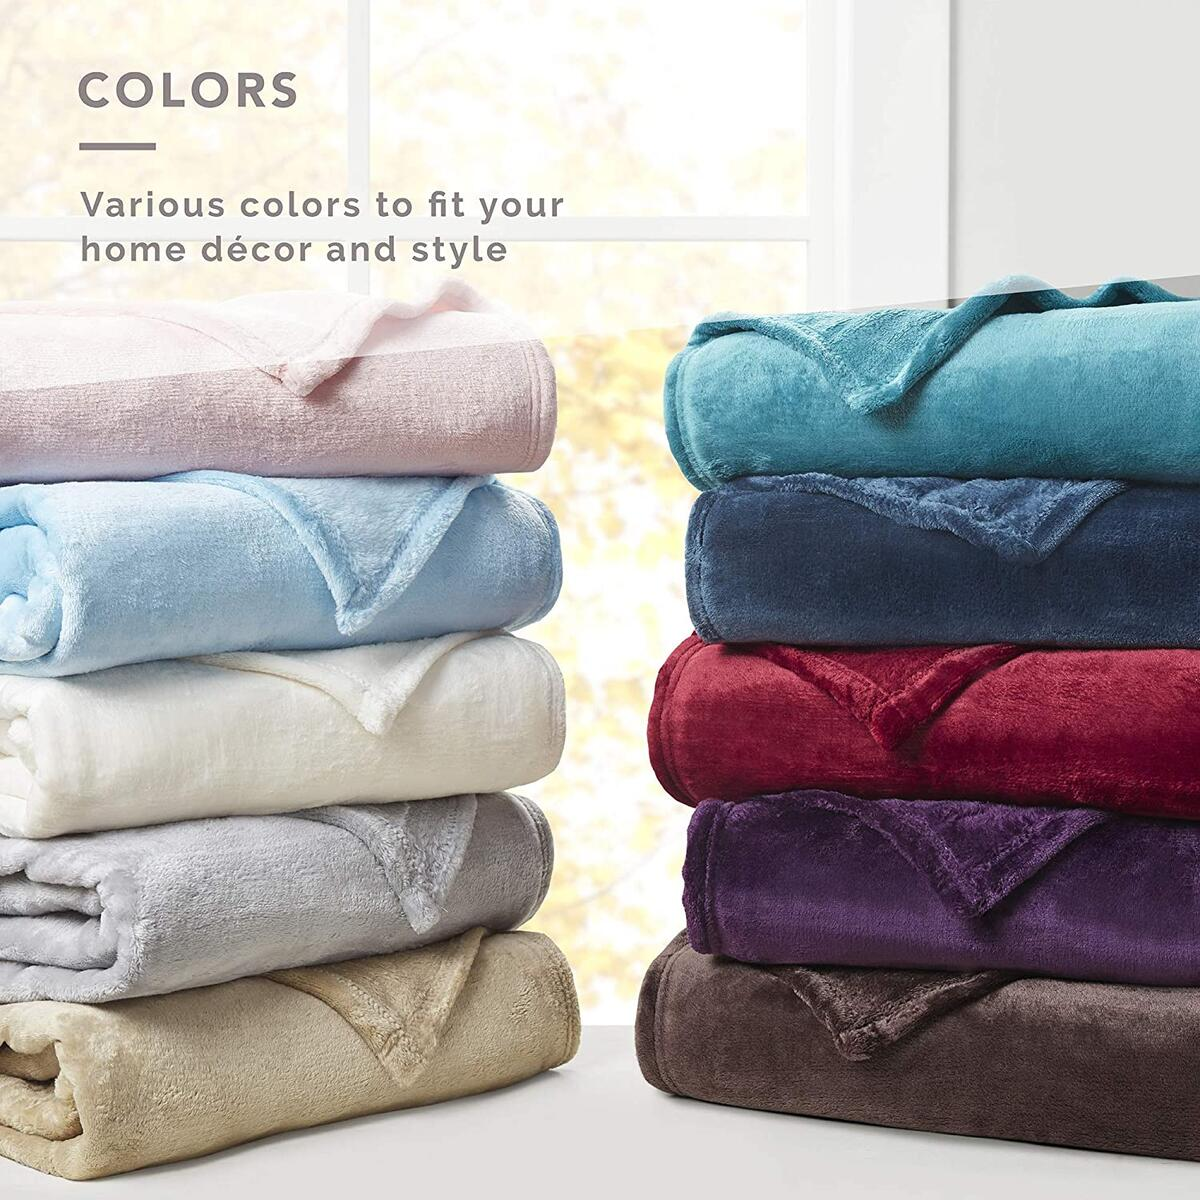 THROW Size Any Color DEGREES OF COMFORT Fleece Throw Blankets for Couch - MicroVelour Velvet Plush | Silky Soft & Lightweight | Use on The Couch, Bed or by The Campfire, 4 Sizes 10 Colors Soft Blanket Throw, 50x60 ANY COLOR